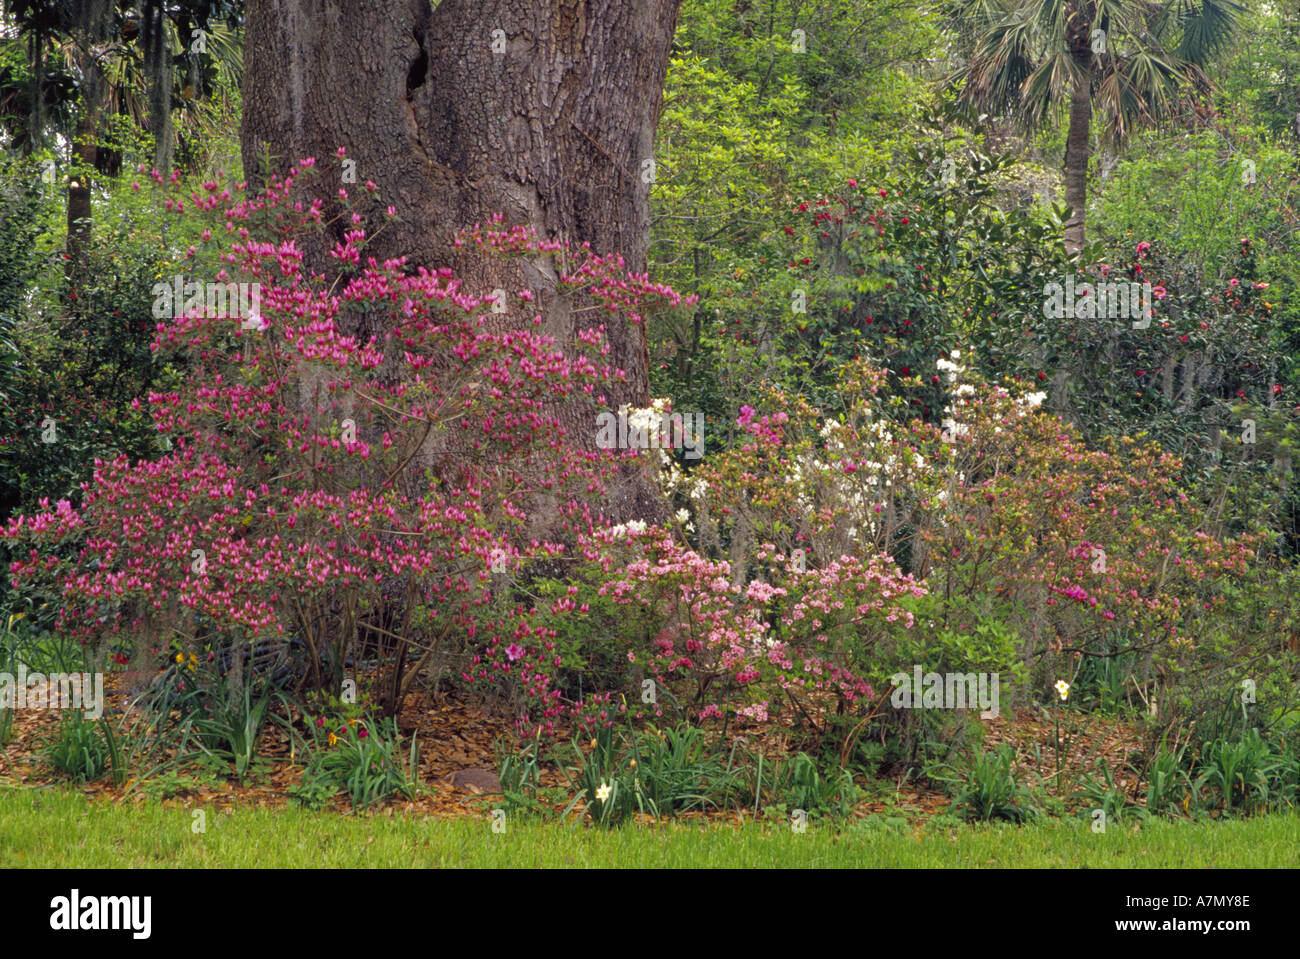 South Carolina Botanic Garden Stock Photos & South Carolina Botanic ...